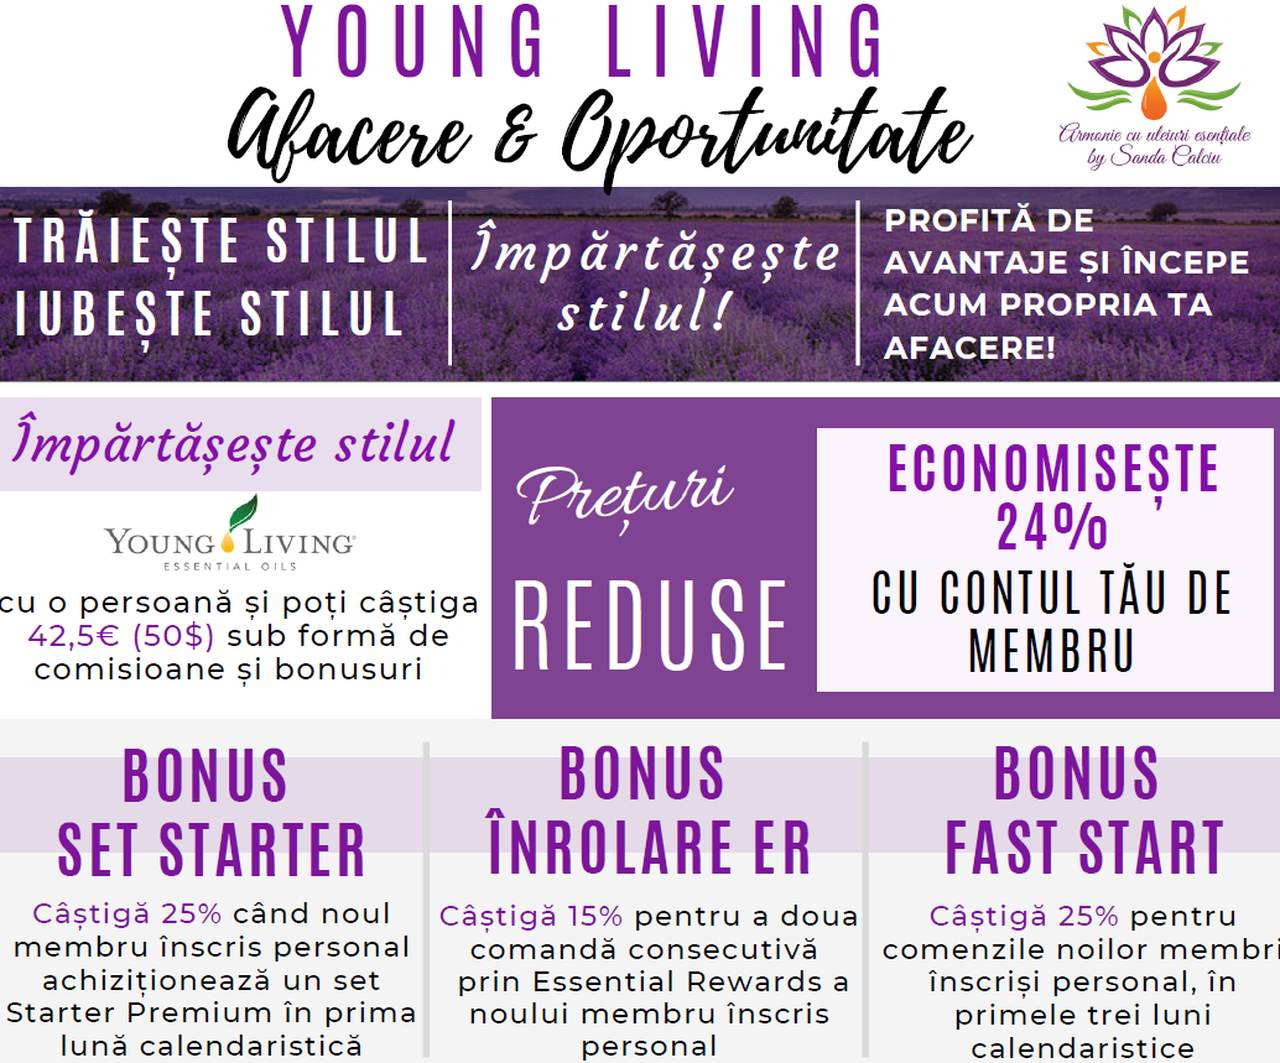 Afacere si oportunitate Young Living_resized